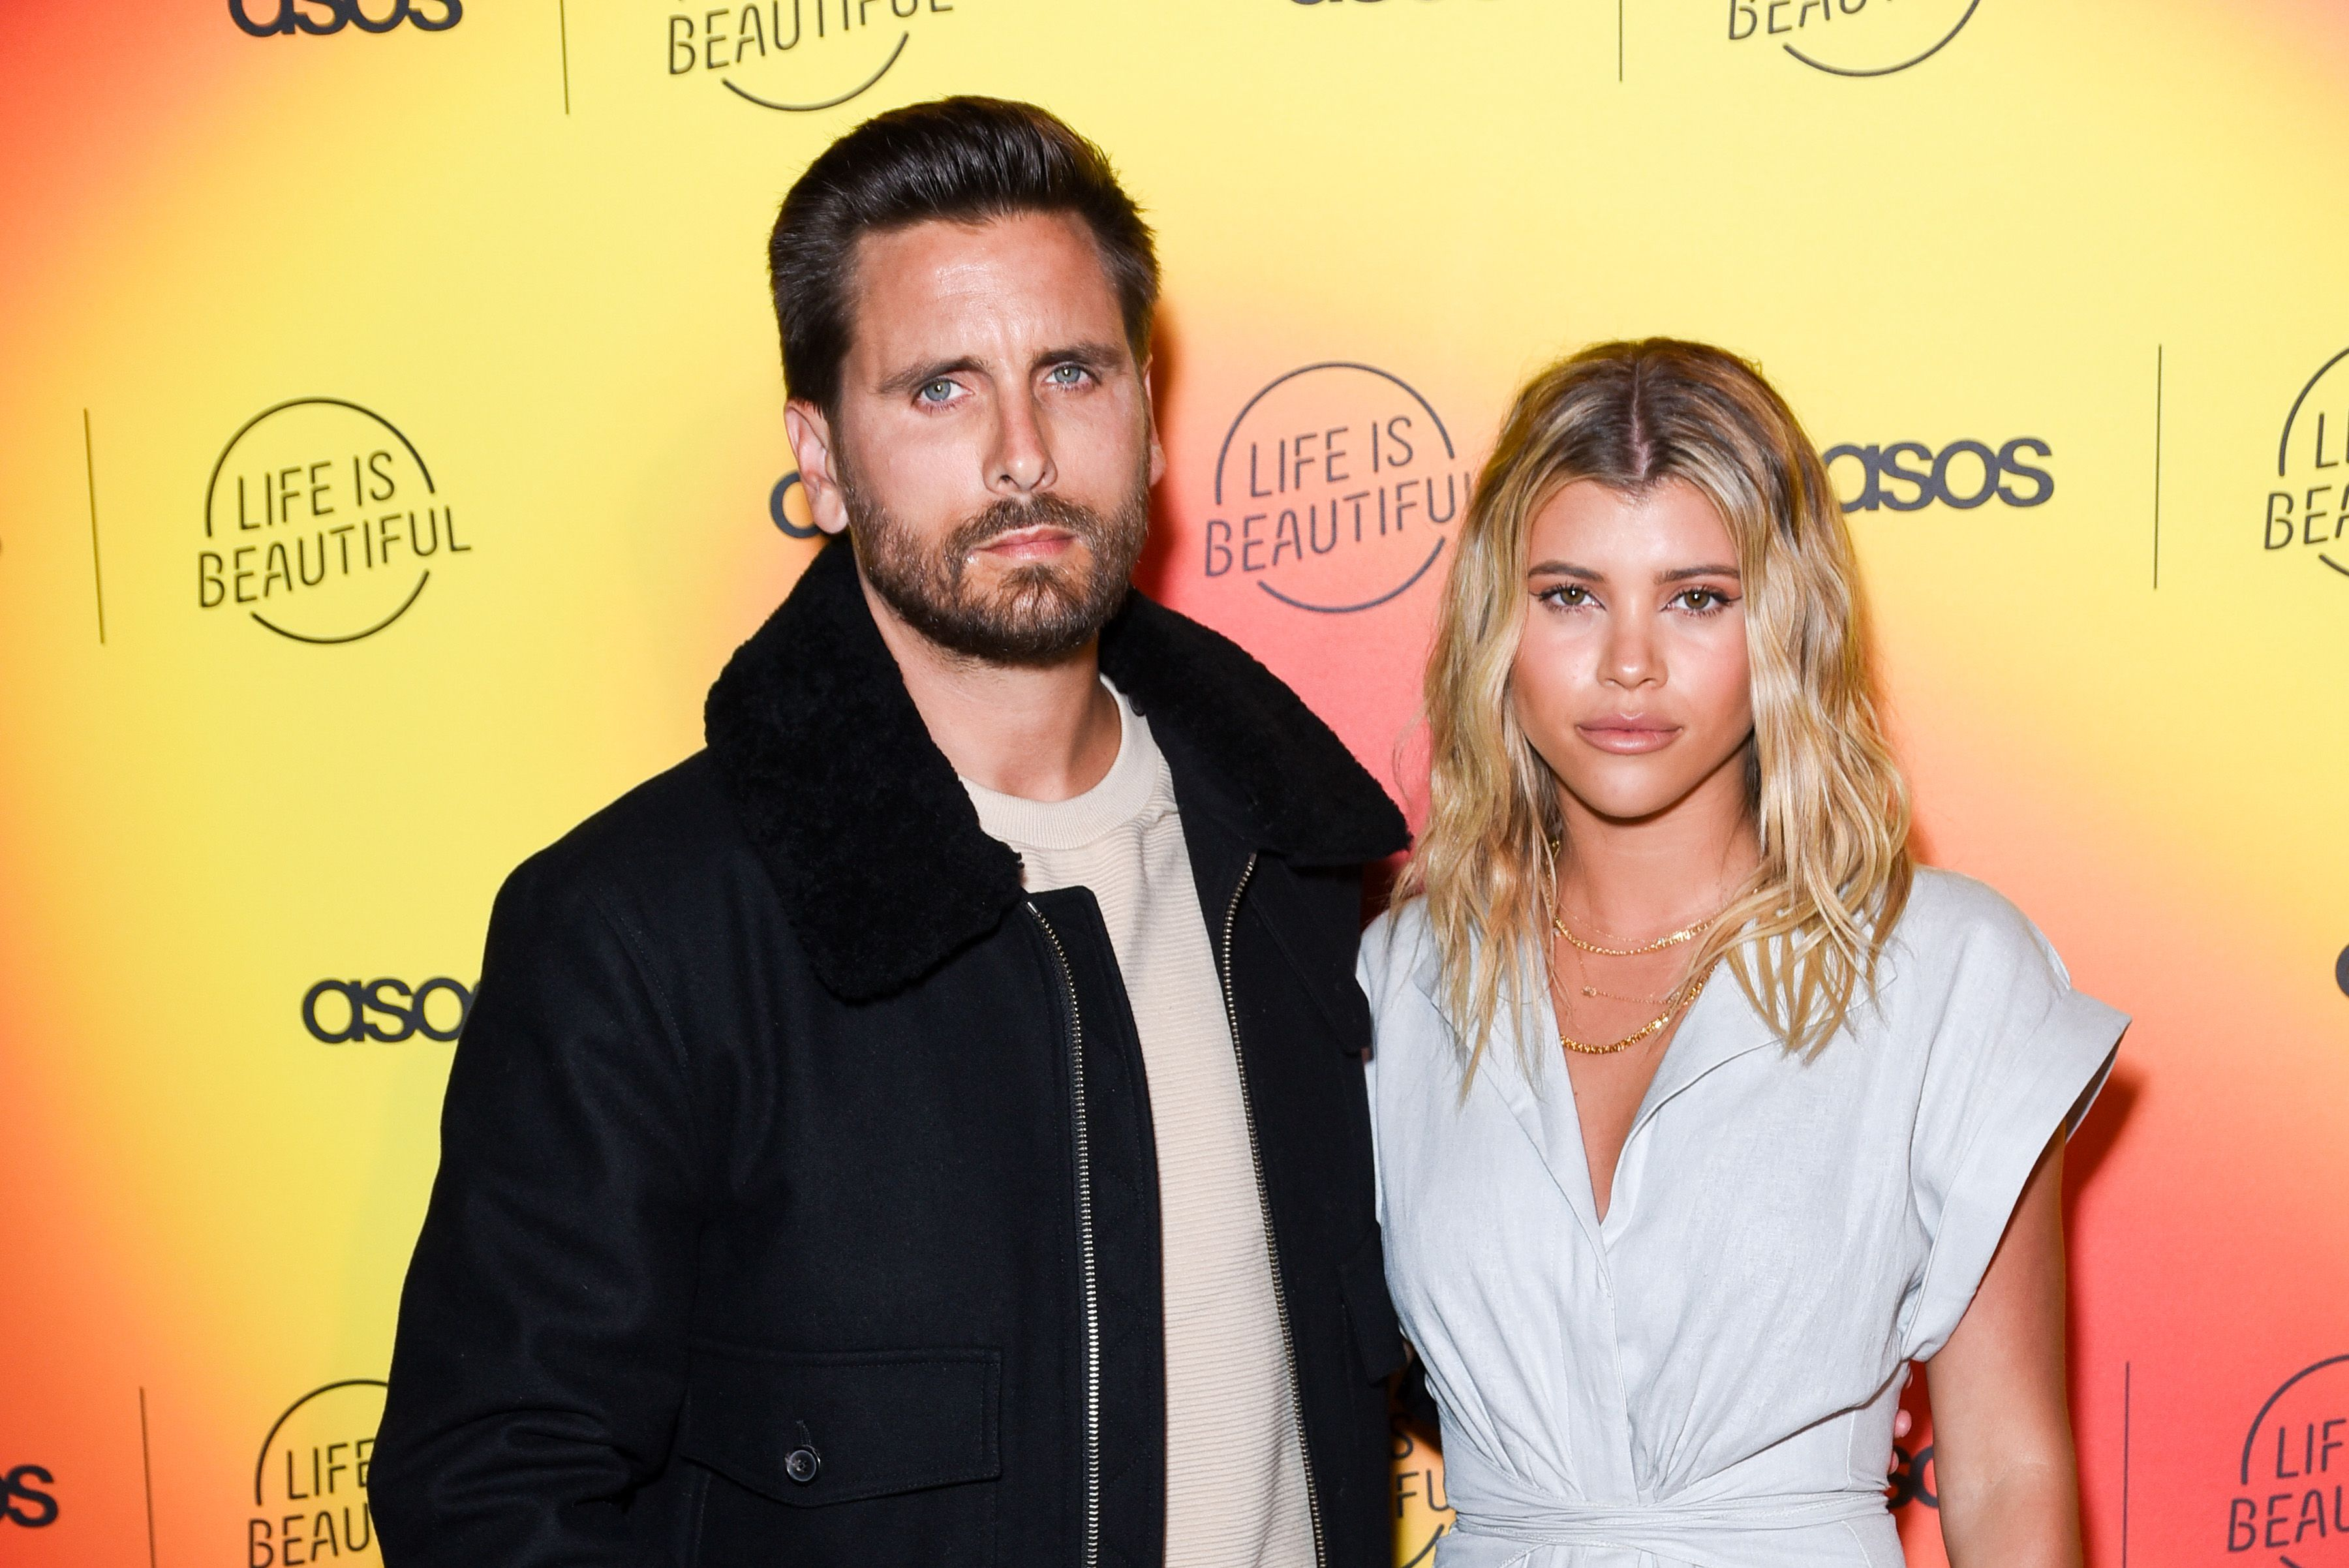 Scott Disick and Sofia Richie smiling against a yellow and orange backdrop.